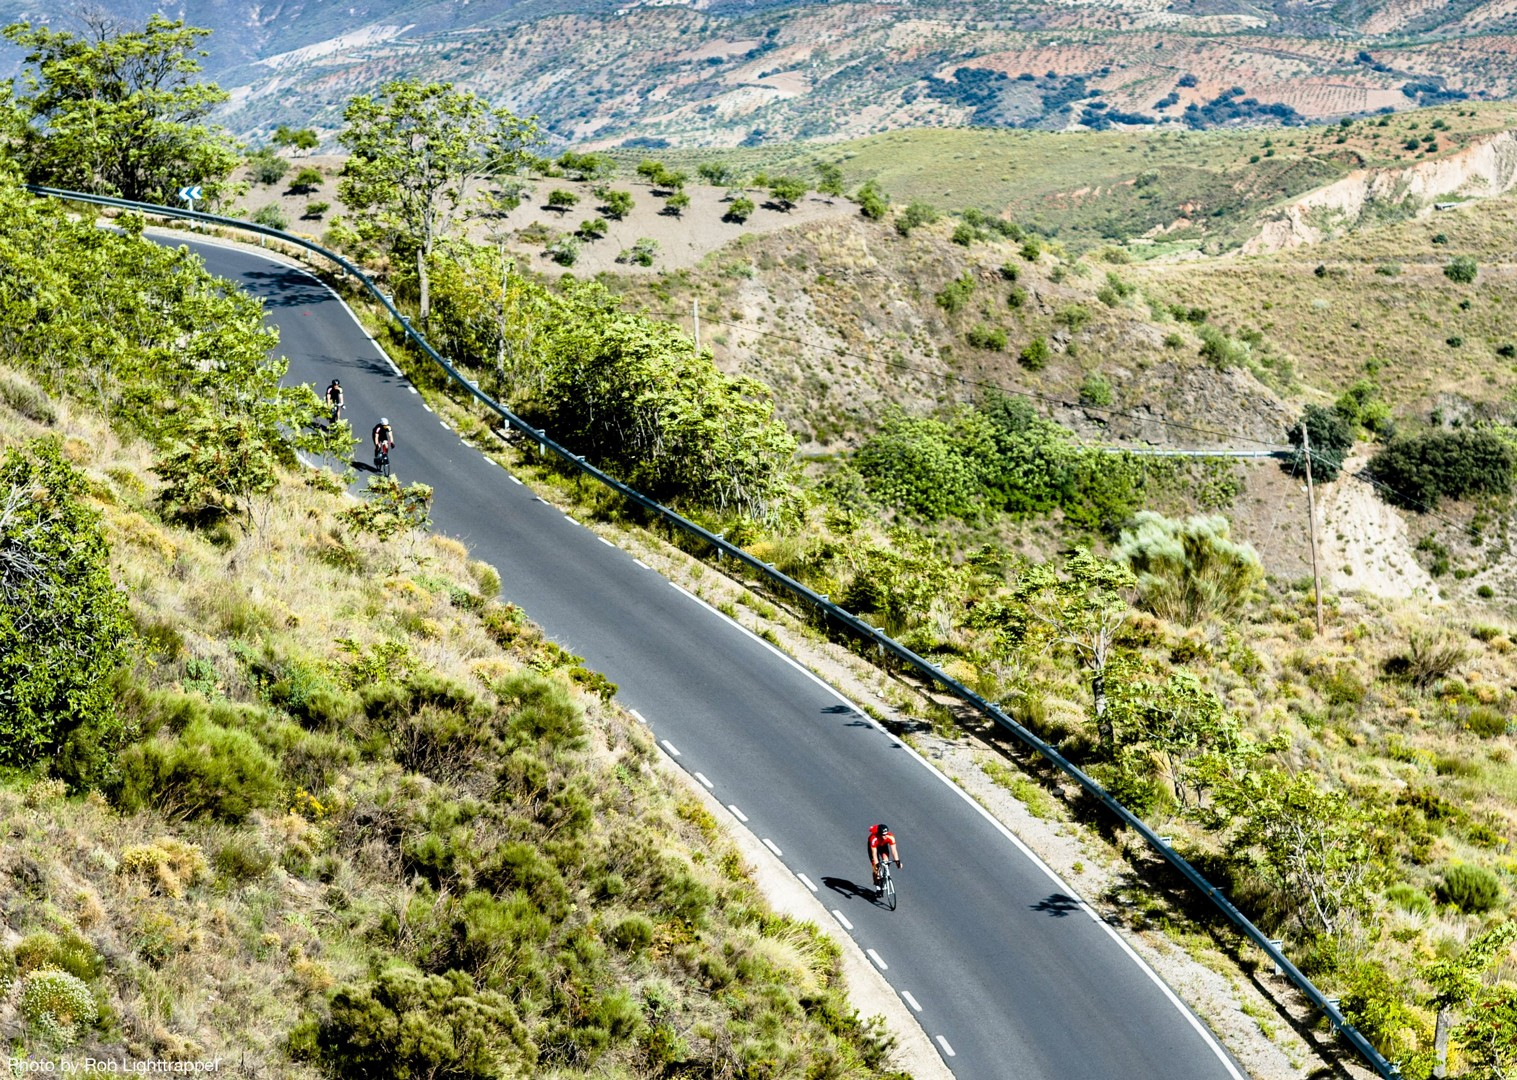 road-cycling-holiday-in-andalucia-in-spain.jpg - Southern Spain - Andalucia - Cape to Cape Traverse - Guided Road Cycling Holiday - Road Cycling